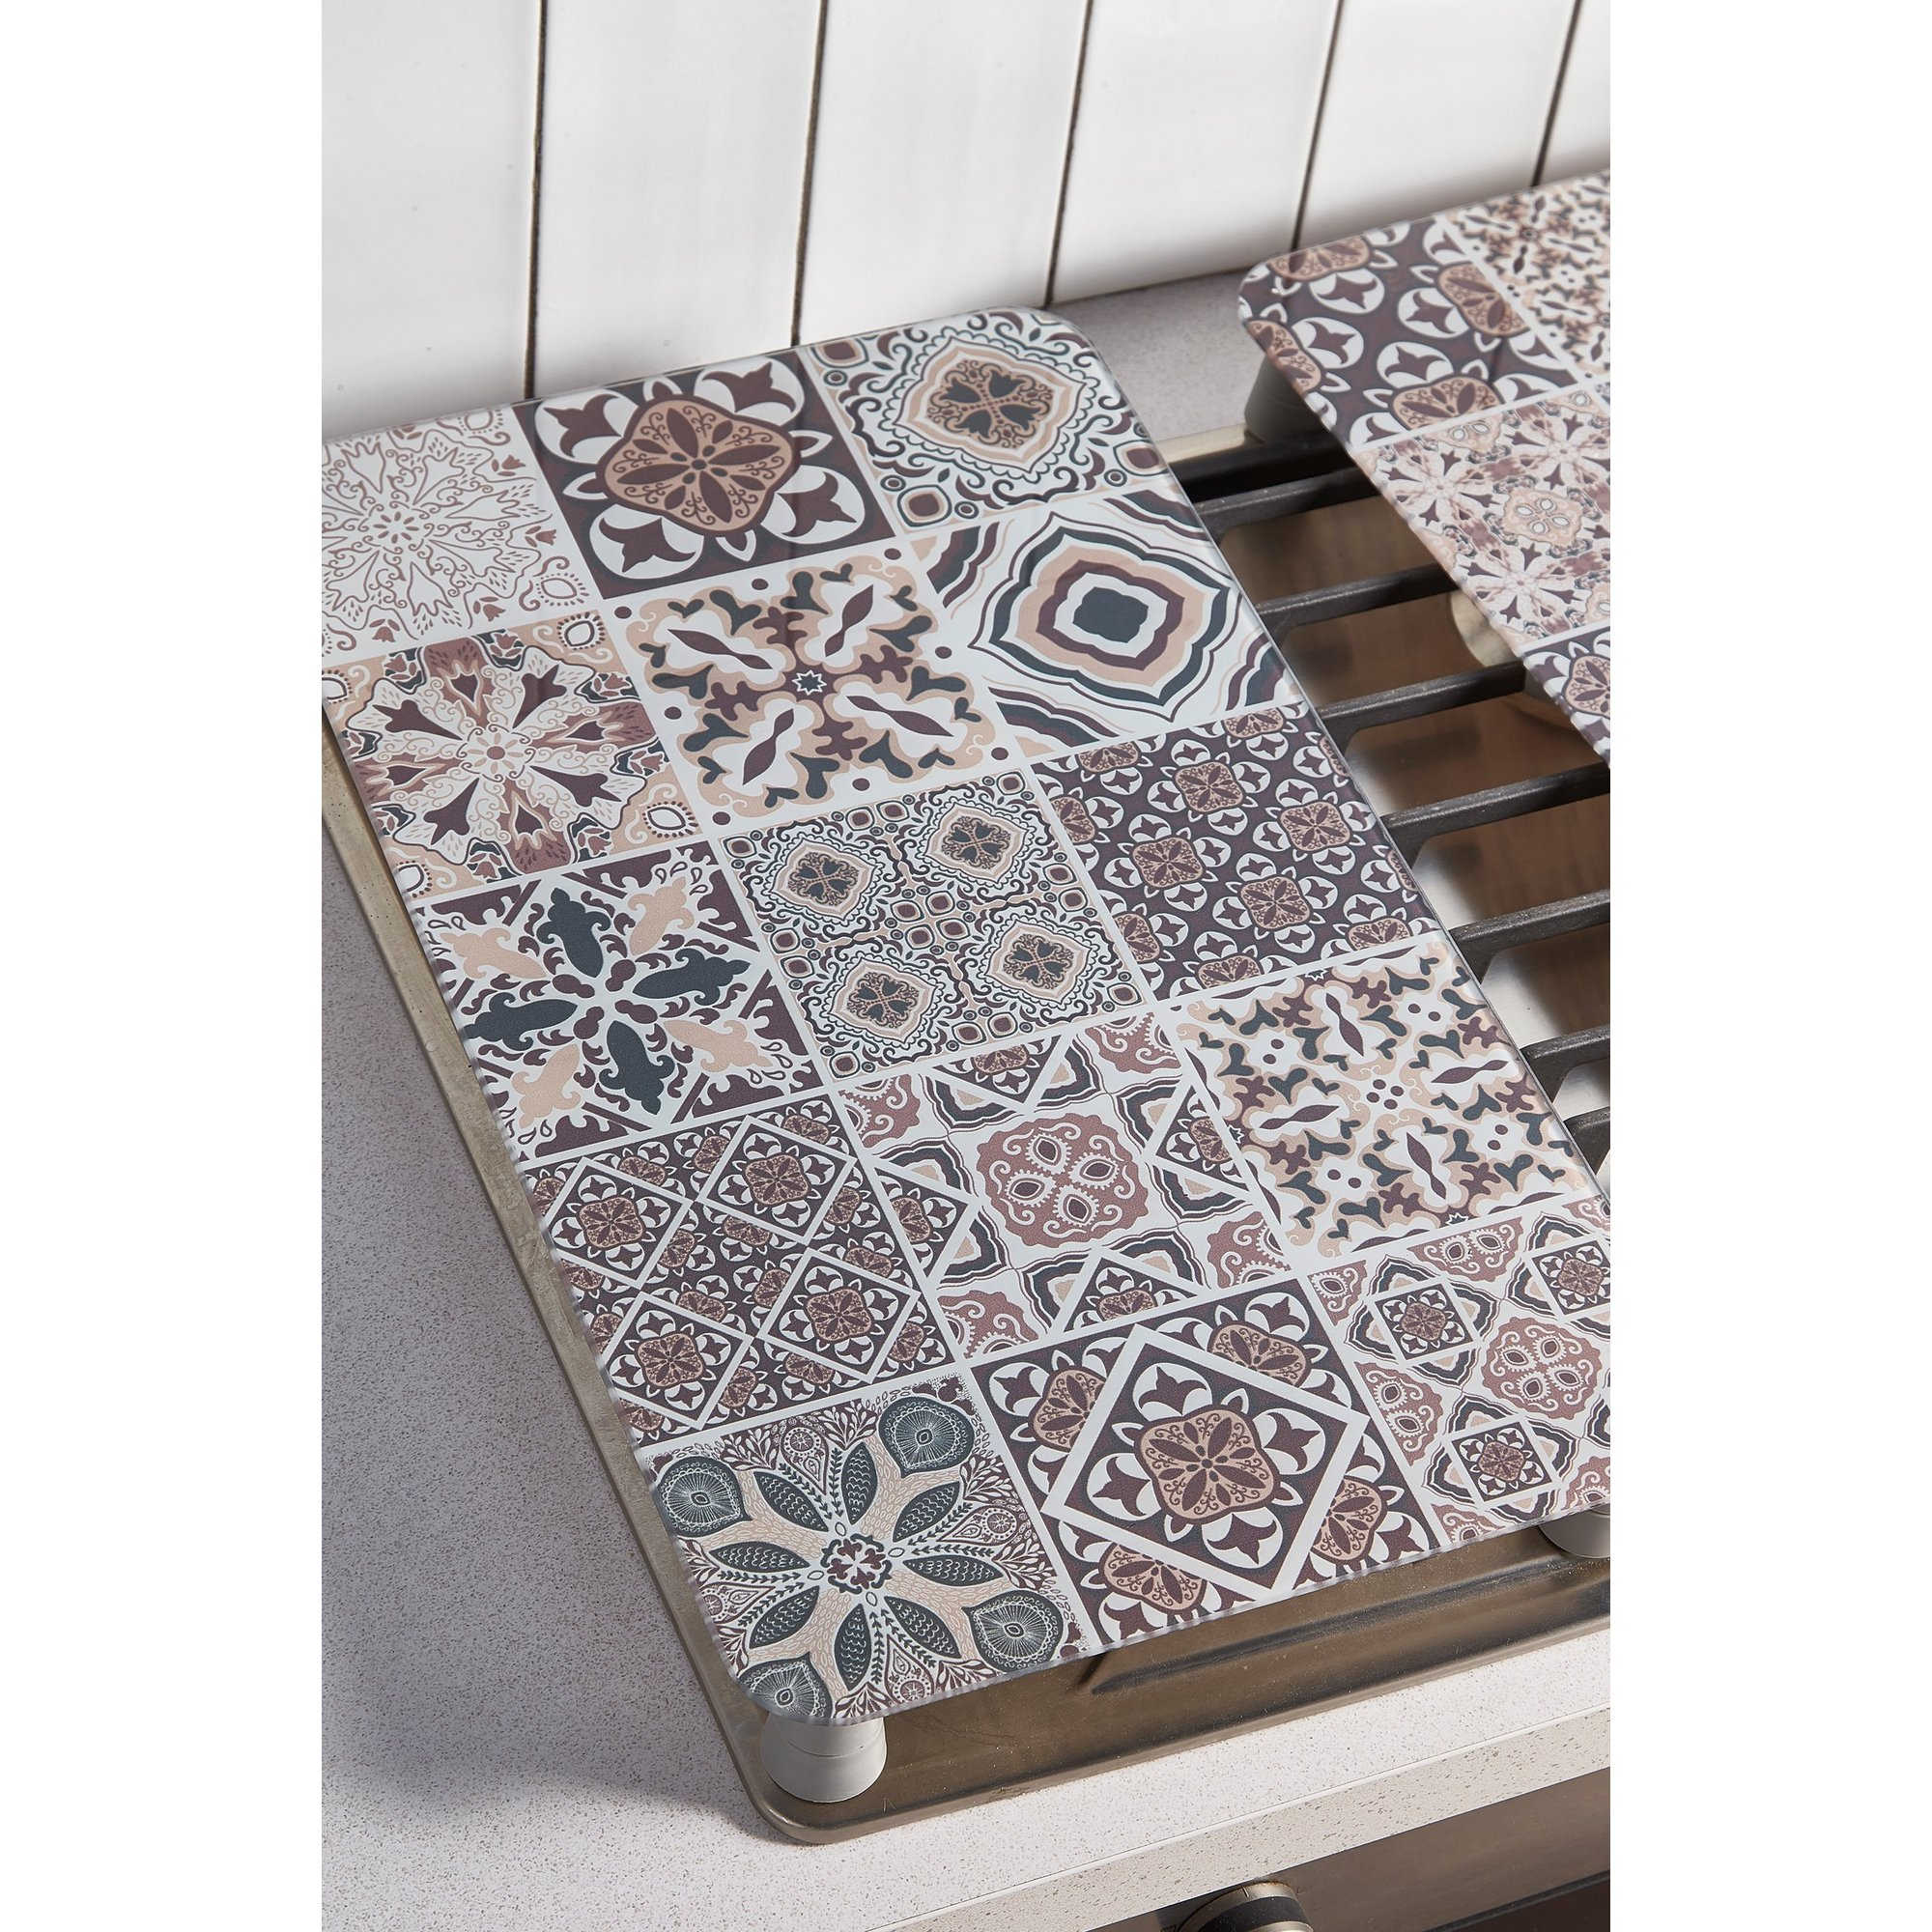 Image of Moroccan Tile Hob Cover Plates